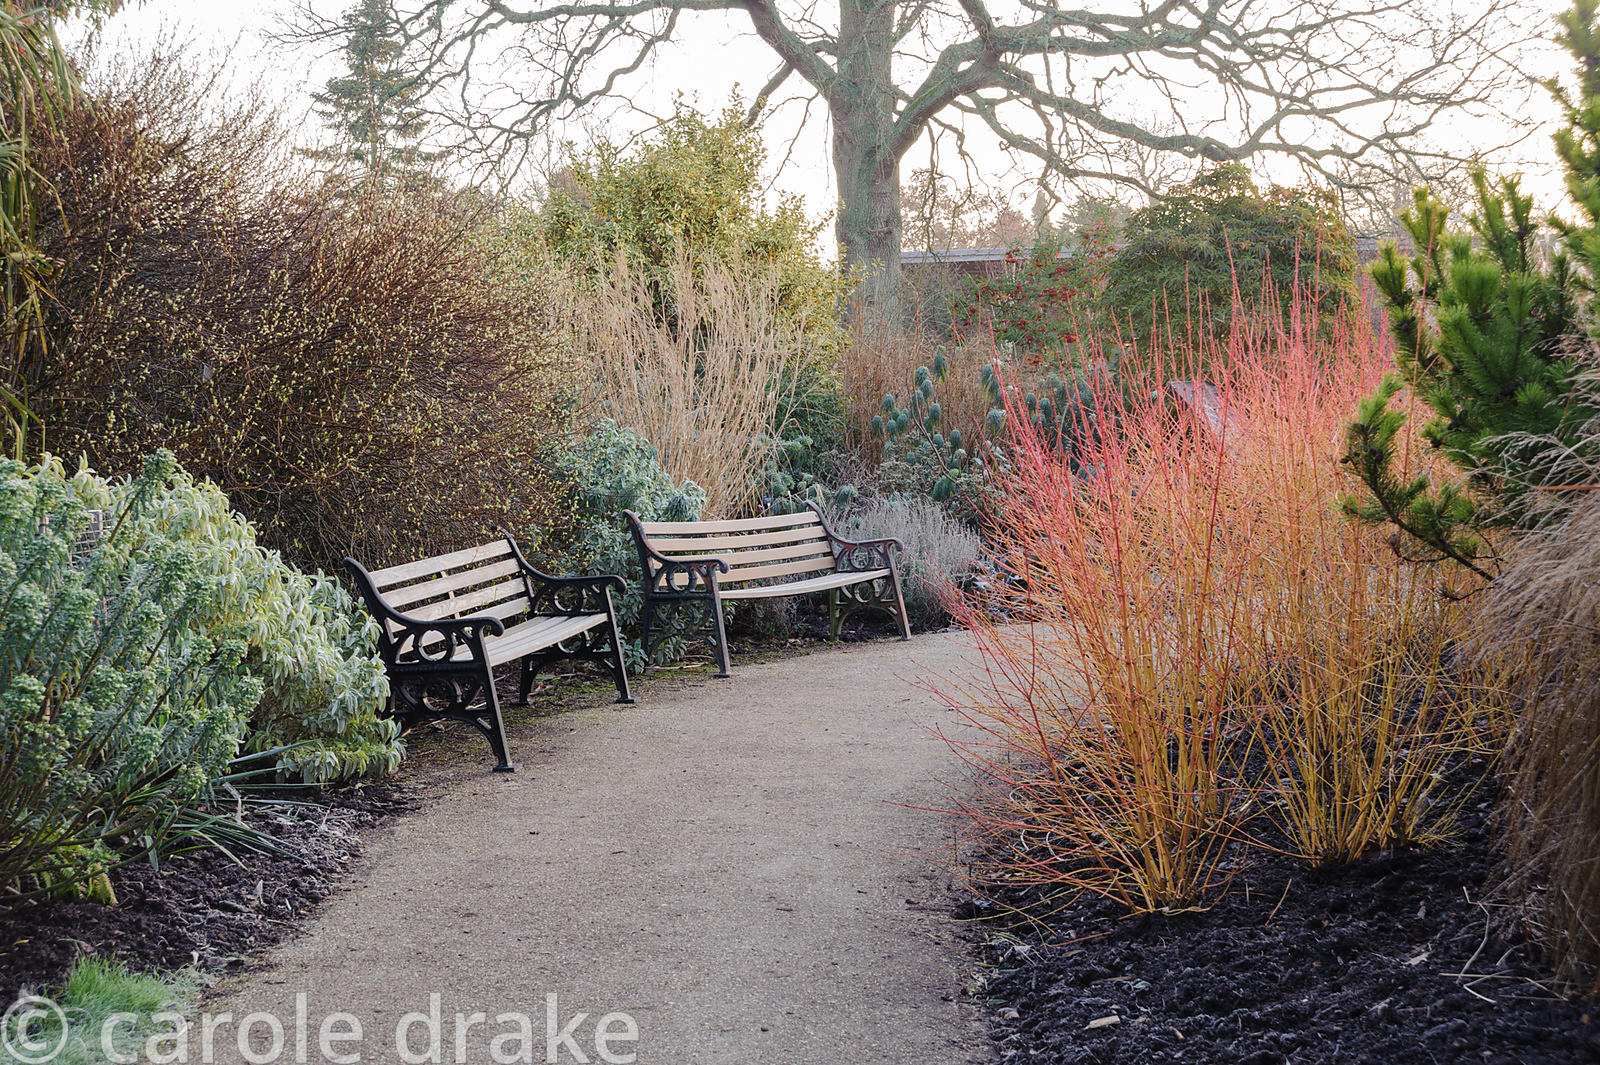 Path through the winter garden edged with Cornus sanguinea 'Midwinter Fire', euphorbias and grasses. Sir Harold Hillier Garde...